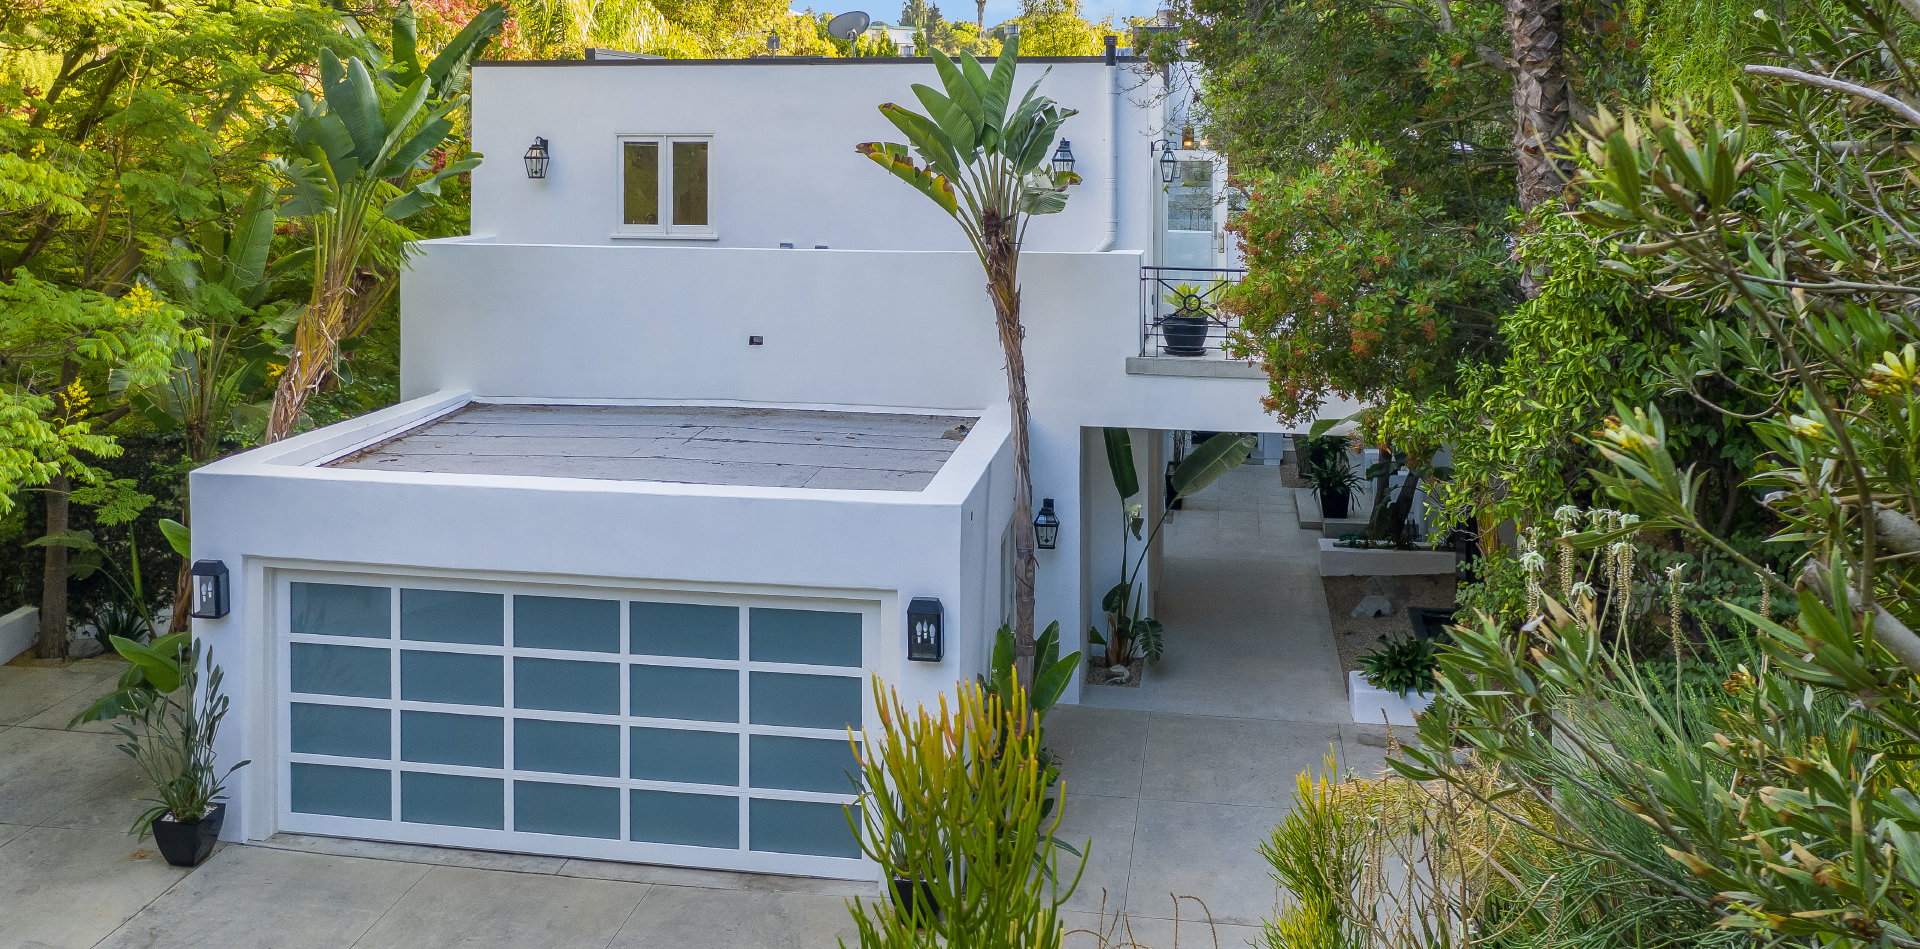 2925 Trudy Drive  - $5,295,000 - $26,750/mo Lease